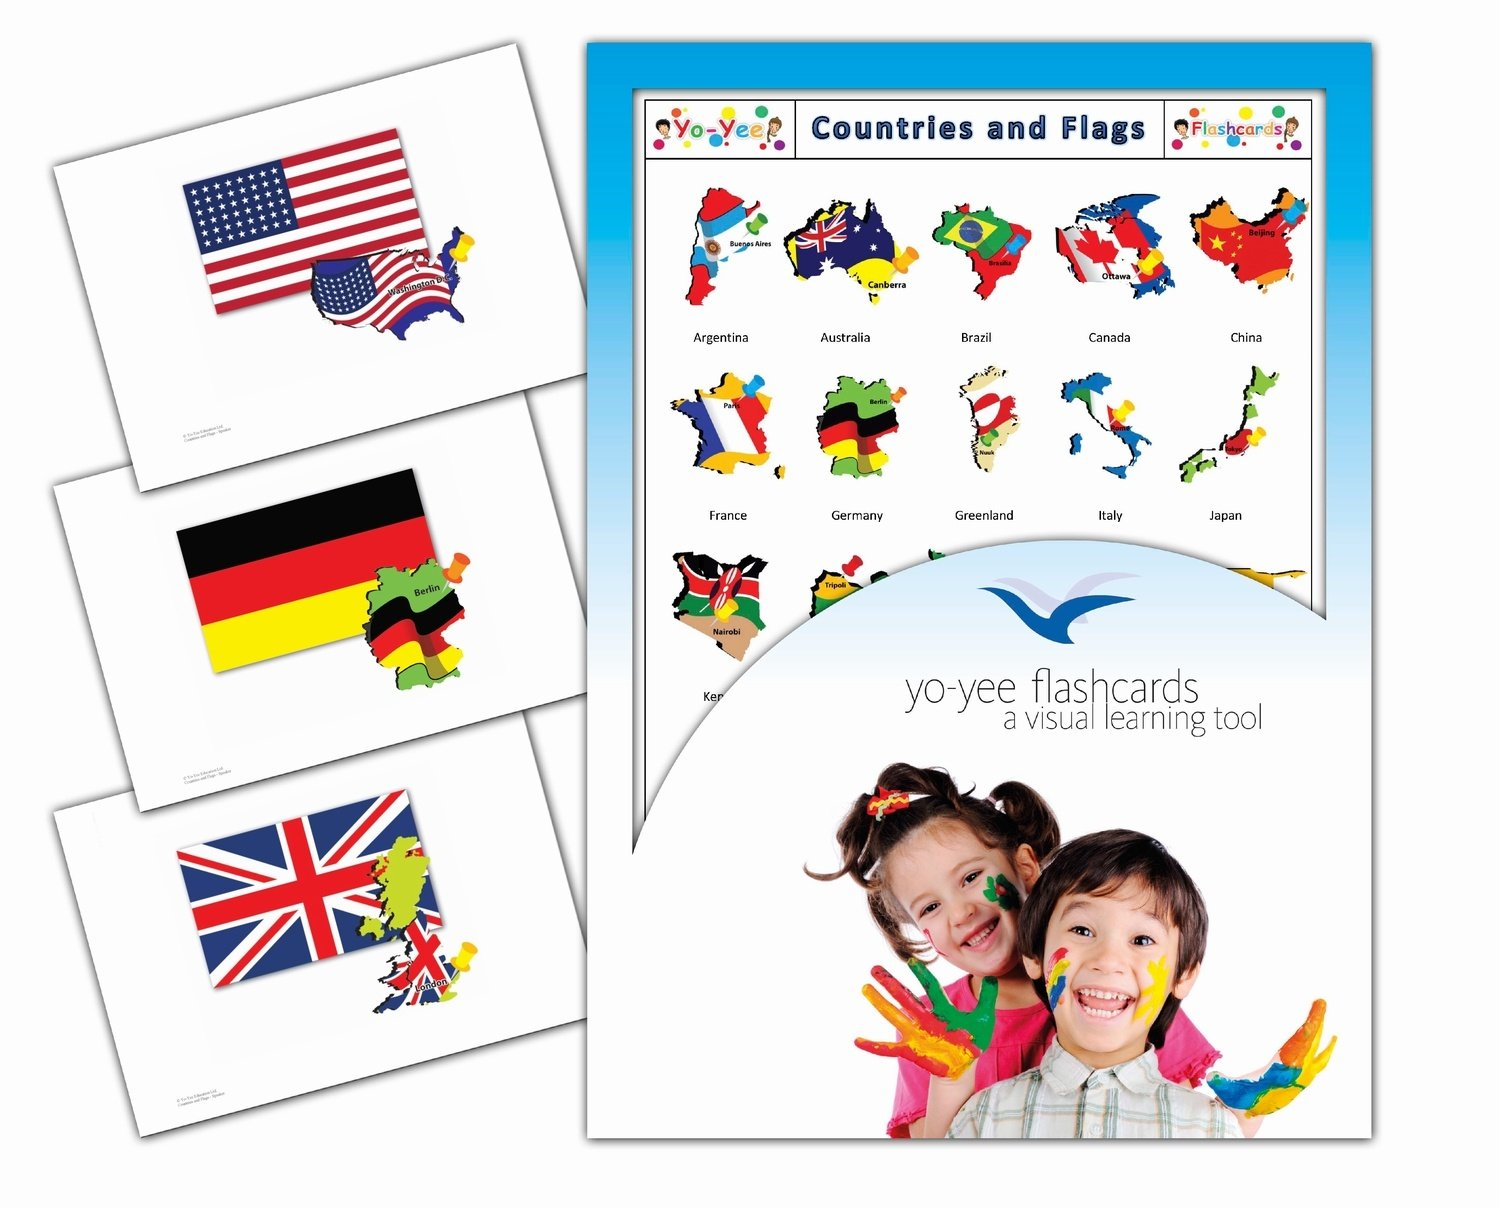 Yo-Yee Flashcards - Continents, Countries and Flags Flash Cards - Vocabulary Picture Cards for Toddlers, Kids, Children and Adults